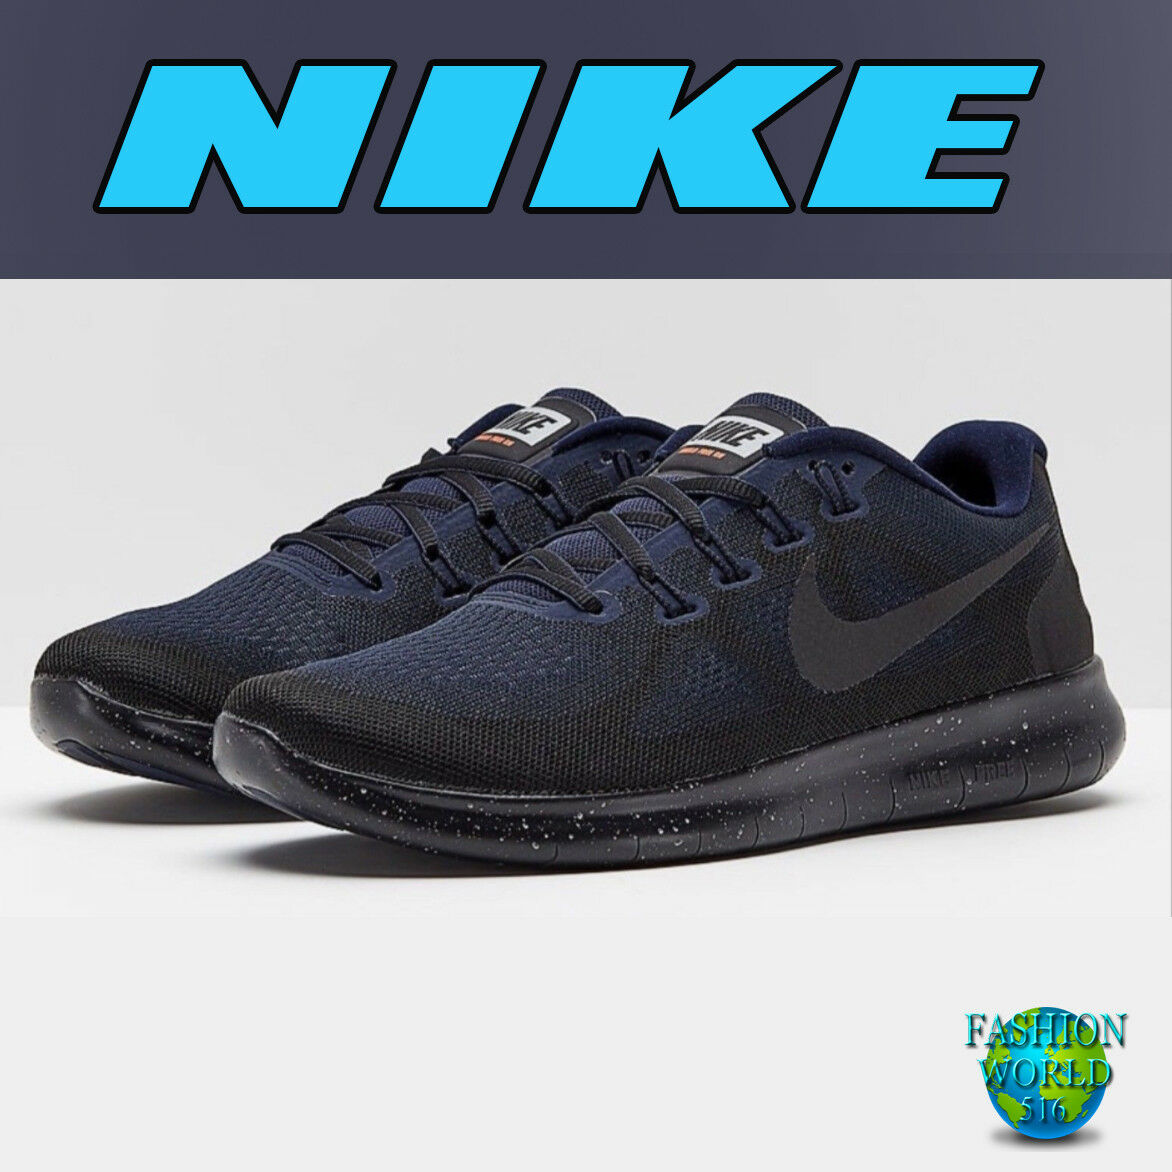 Nike Men's Size 11 Free RN 2017 Shield Running shoes Black Obsidian AA3760 001